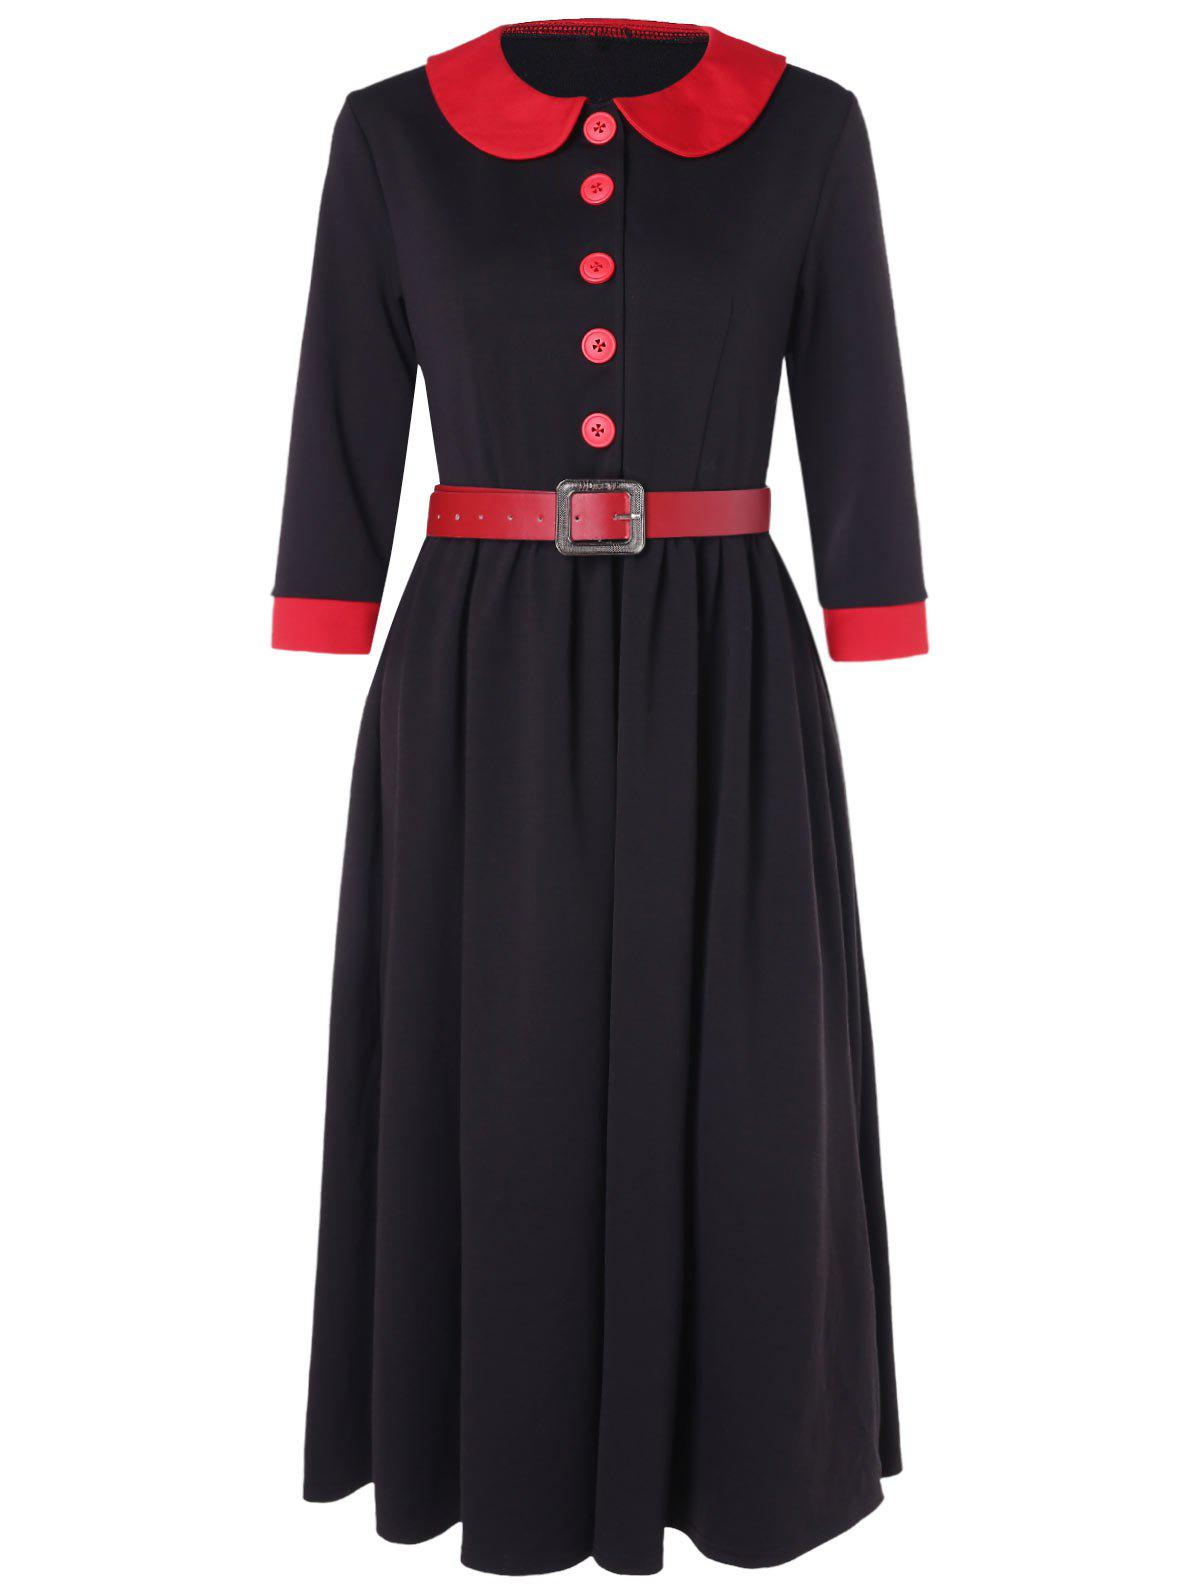 Fashion Half Button Peter Pan Collar Belted Dress